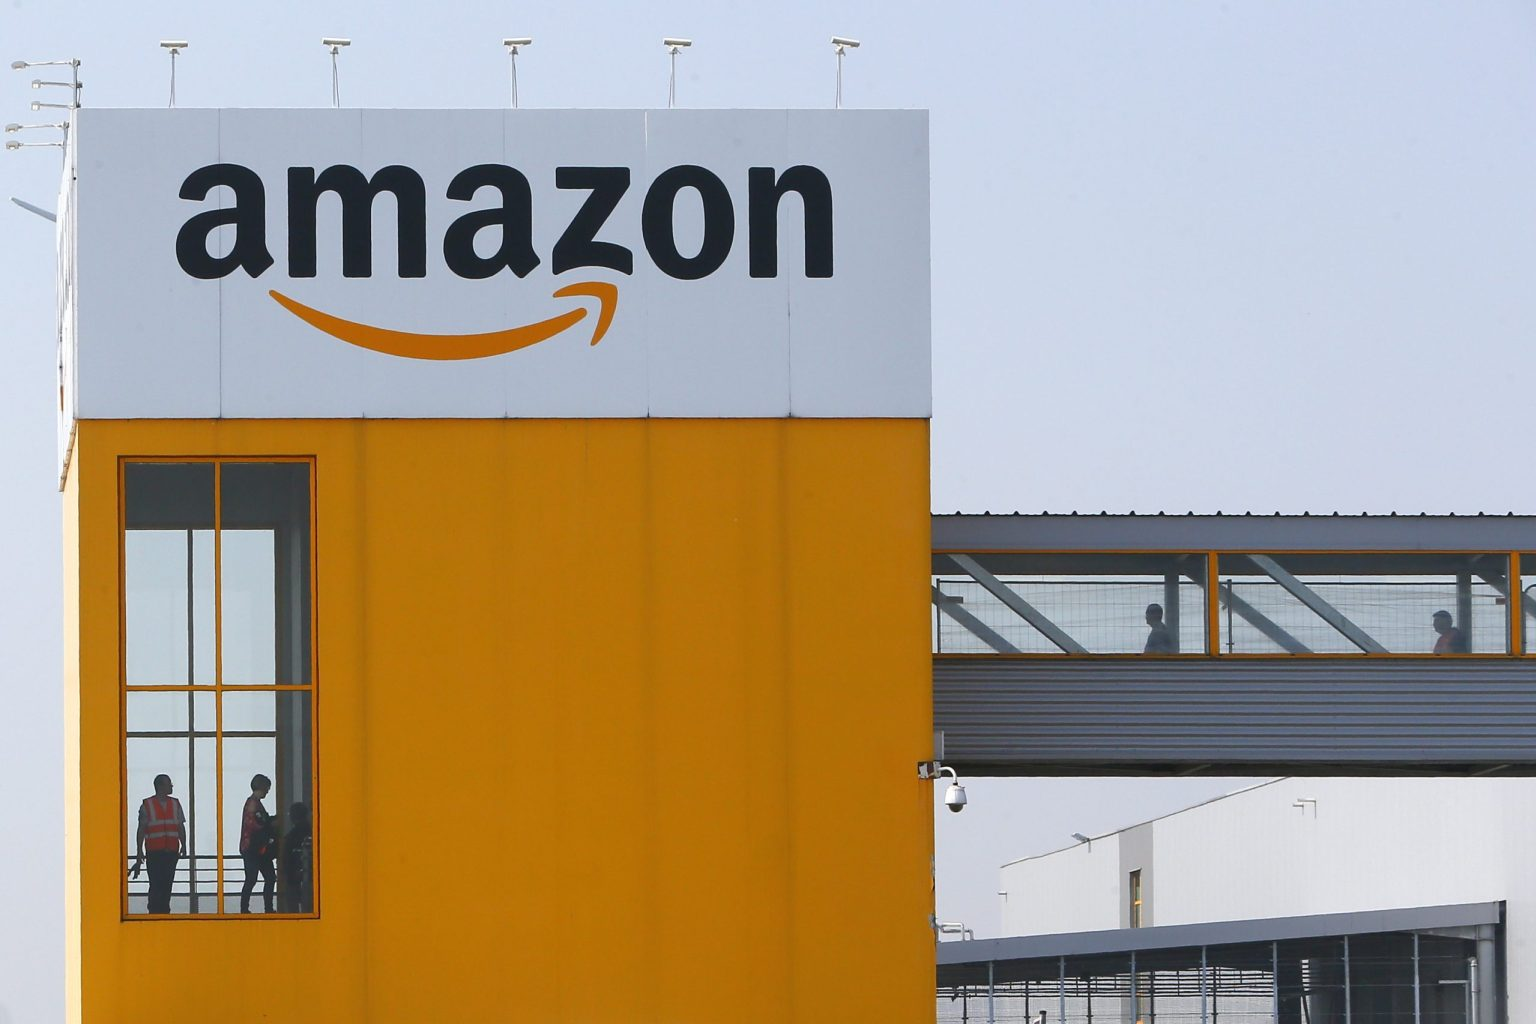 Employees observe social distancing due to coronavirus at the entrance of Amazon in Douai, France,